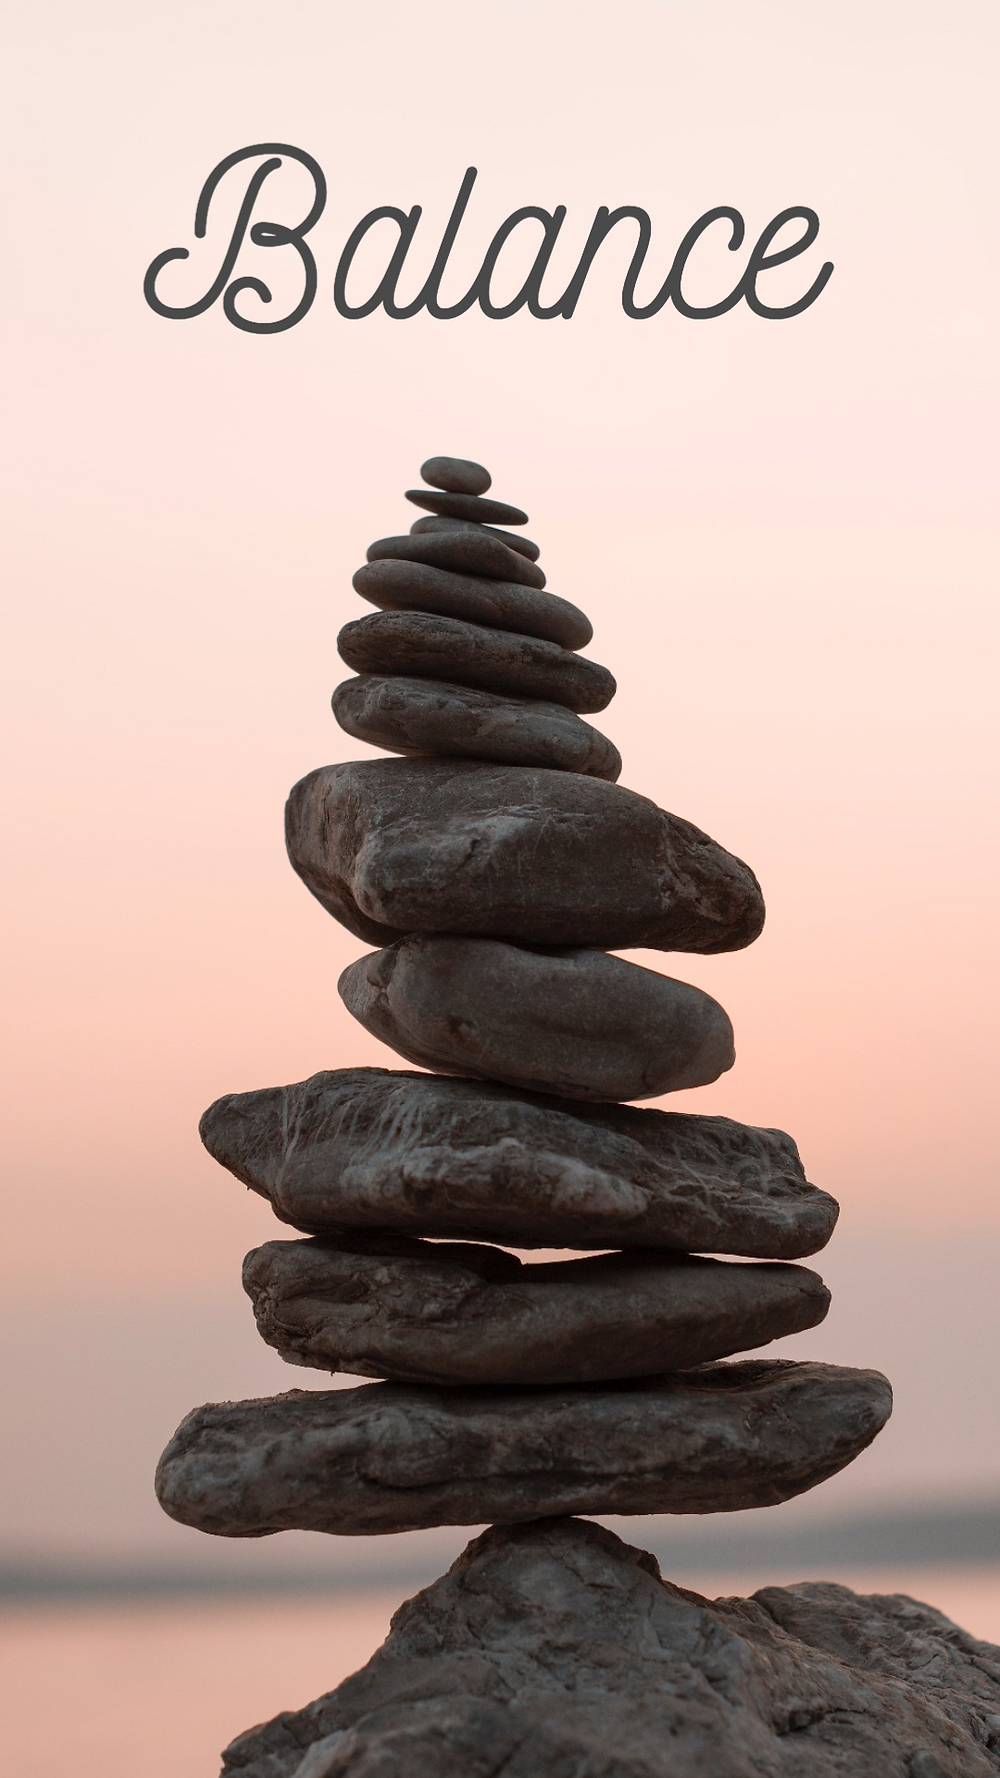 Balance mindfulness social media story template with stacked rocks on a beach